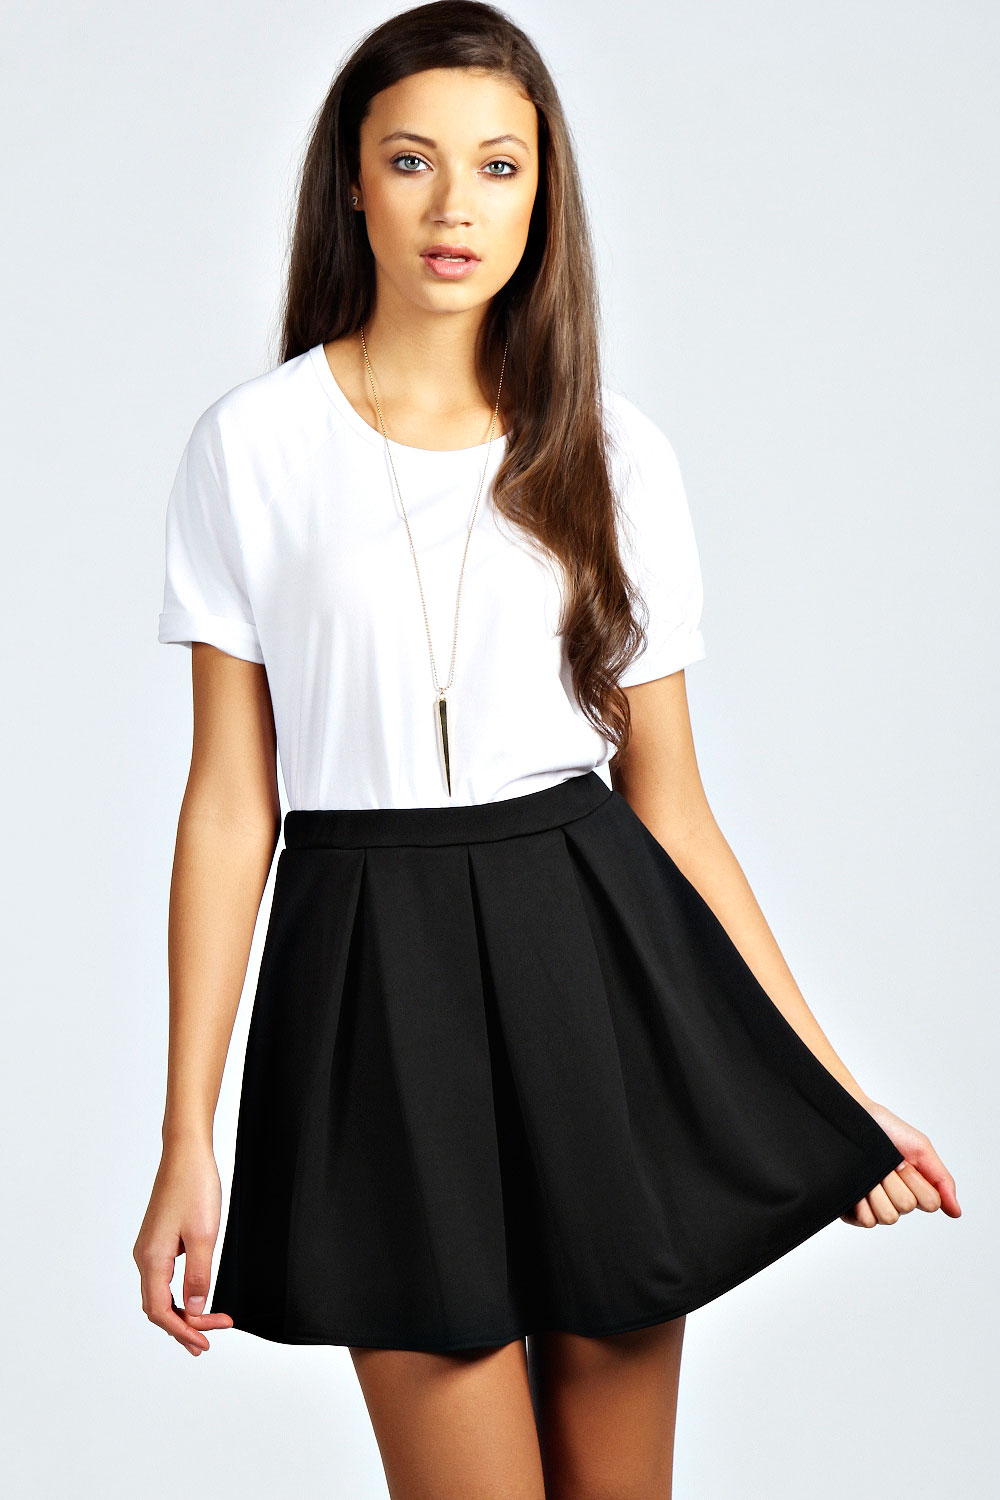 Boohoo Womens Ladies Aleena Box Pleat Scuba Skater Skirt | eBay